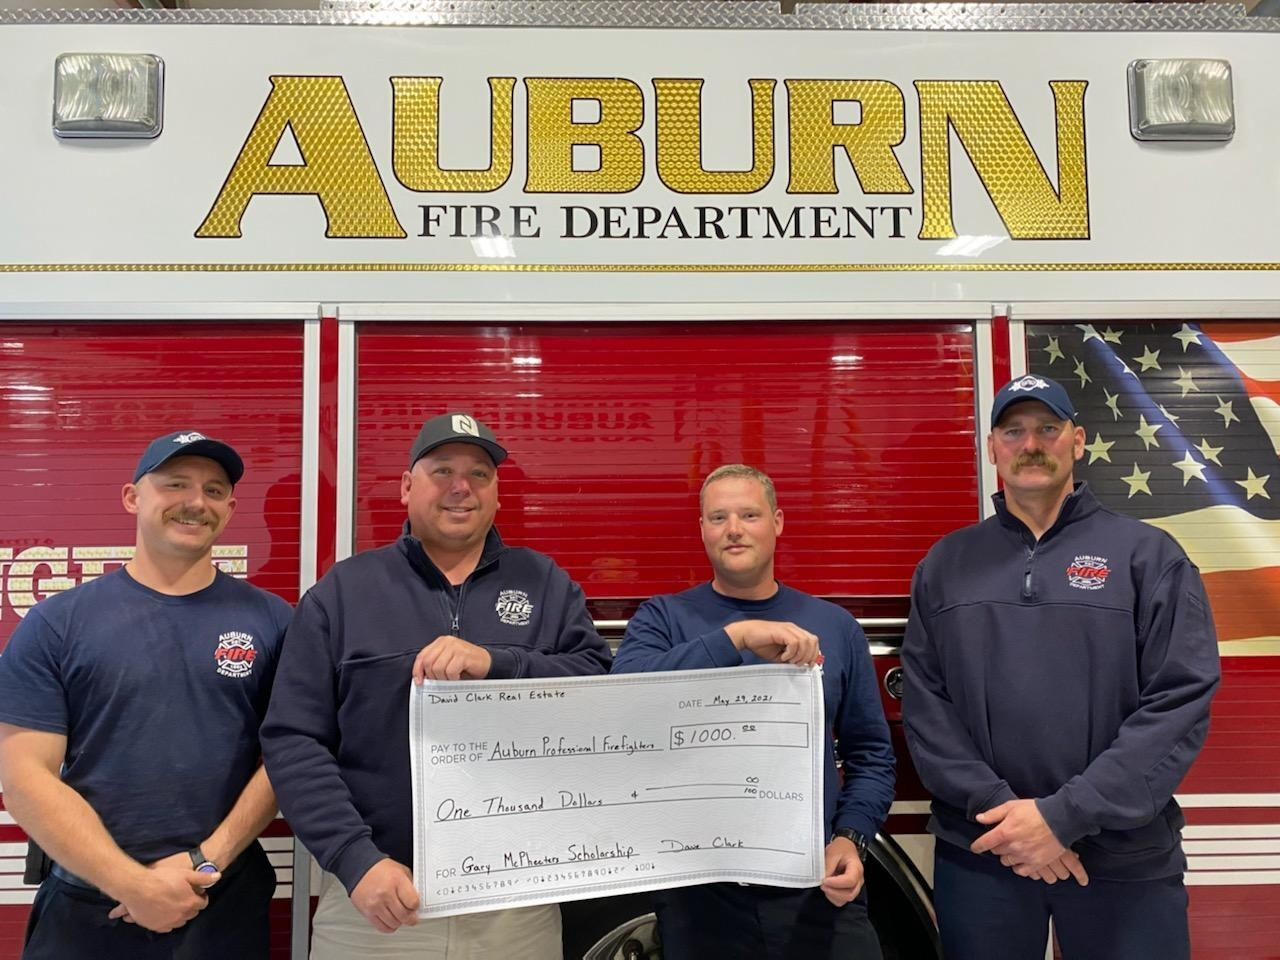 firefighters presenting check.